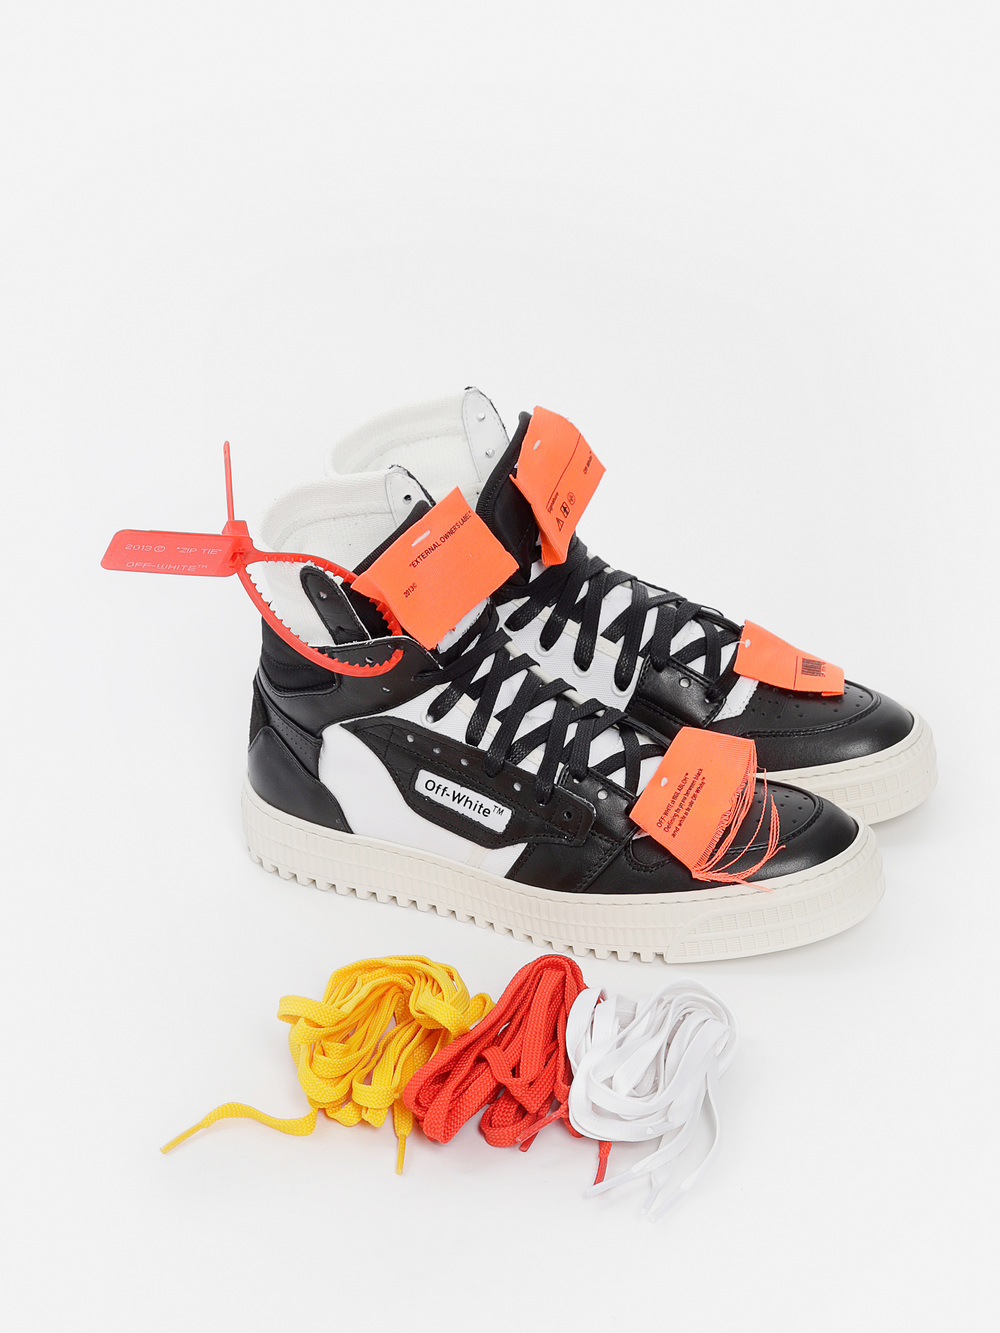 Look at OFF-WHITE C/O VIRGIL ABLOH's Black and White Low 3.0 Sneakers